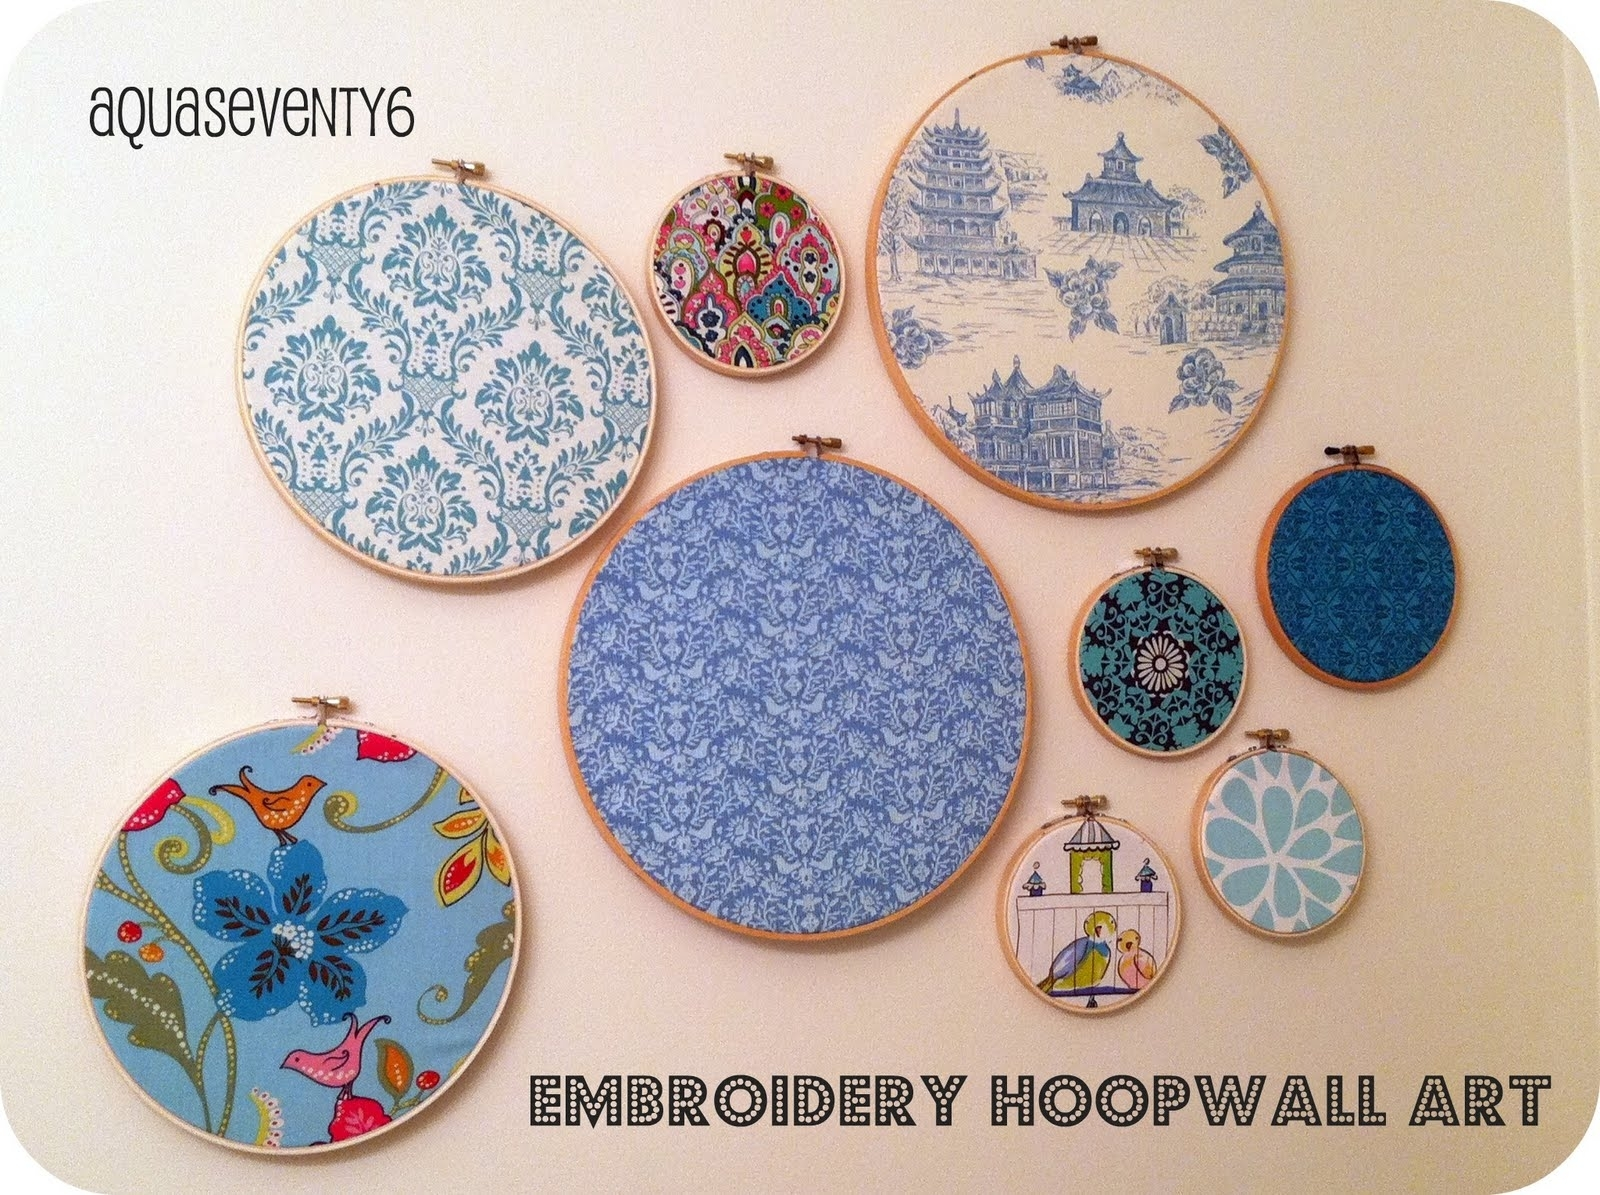 Aqua Seventy6: Embroidery Hoop Wall Art With Current Fabric Hoop Wall Art (View 4 of 15)